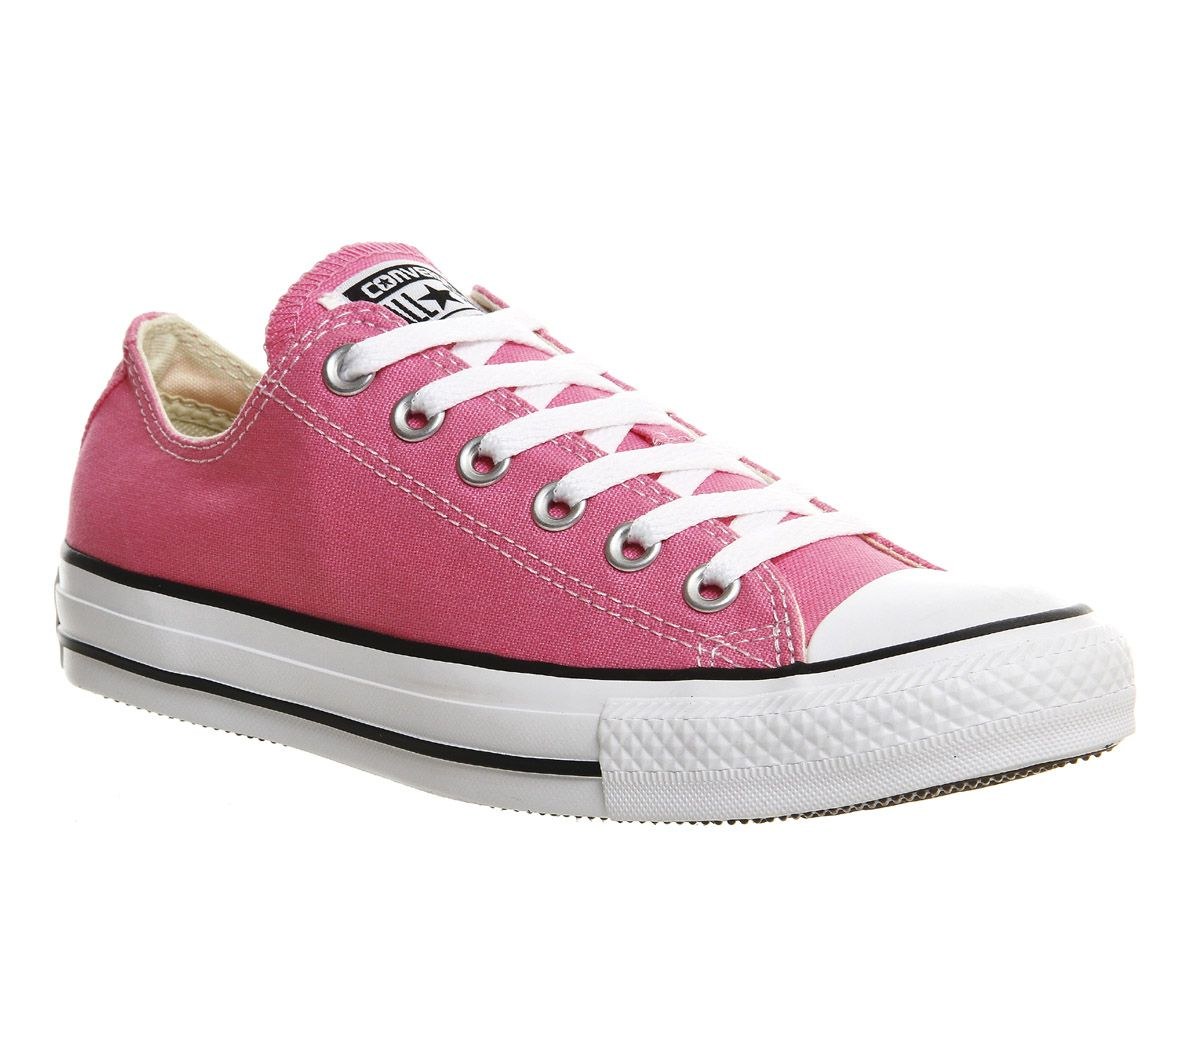 96b130254f1c Converse All Star Low Pink Canvas - Hers trainers